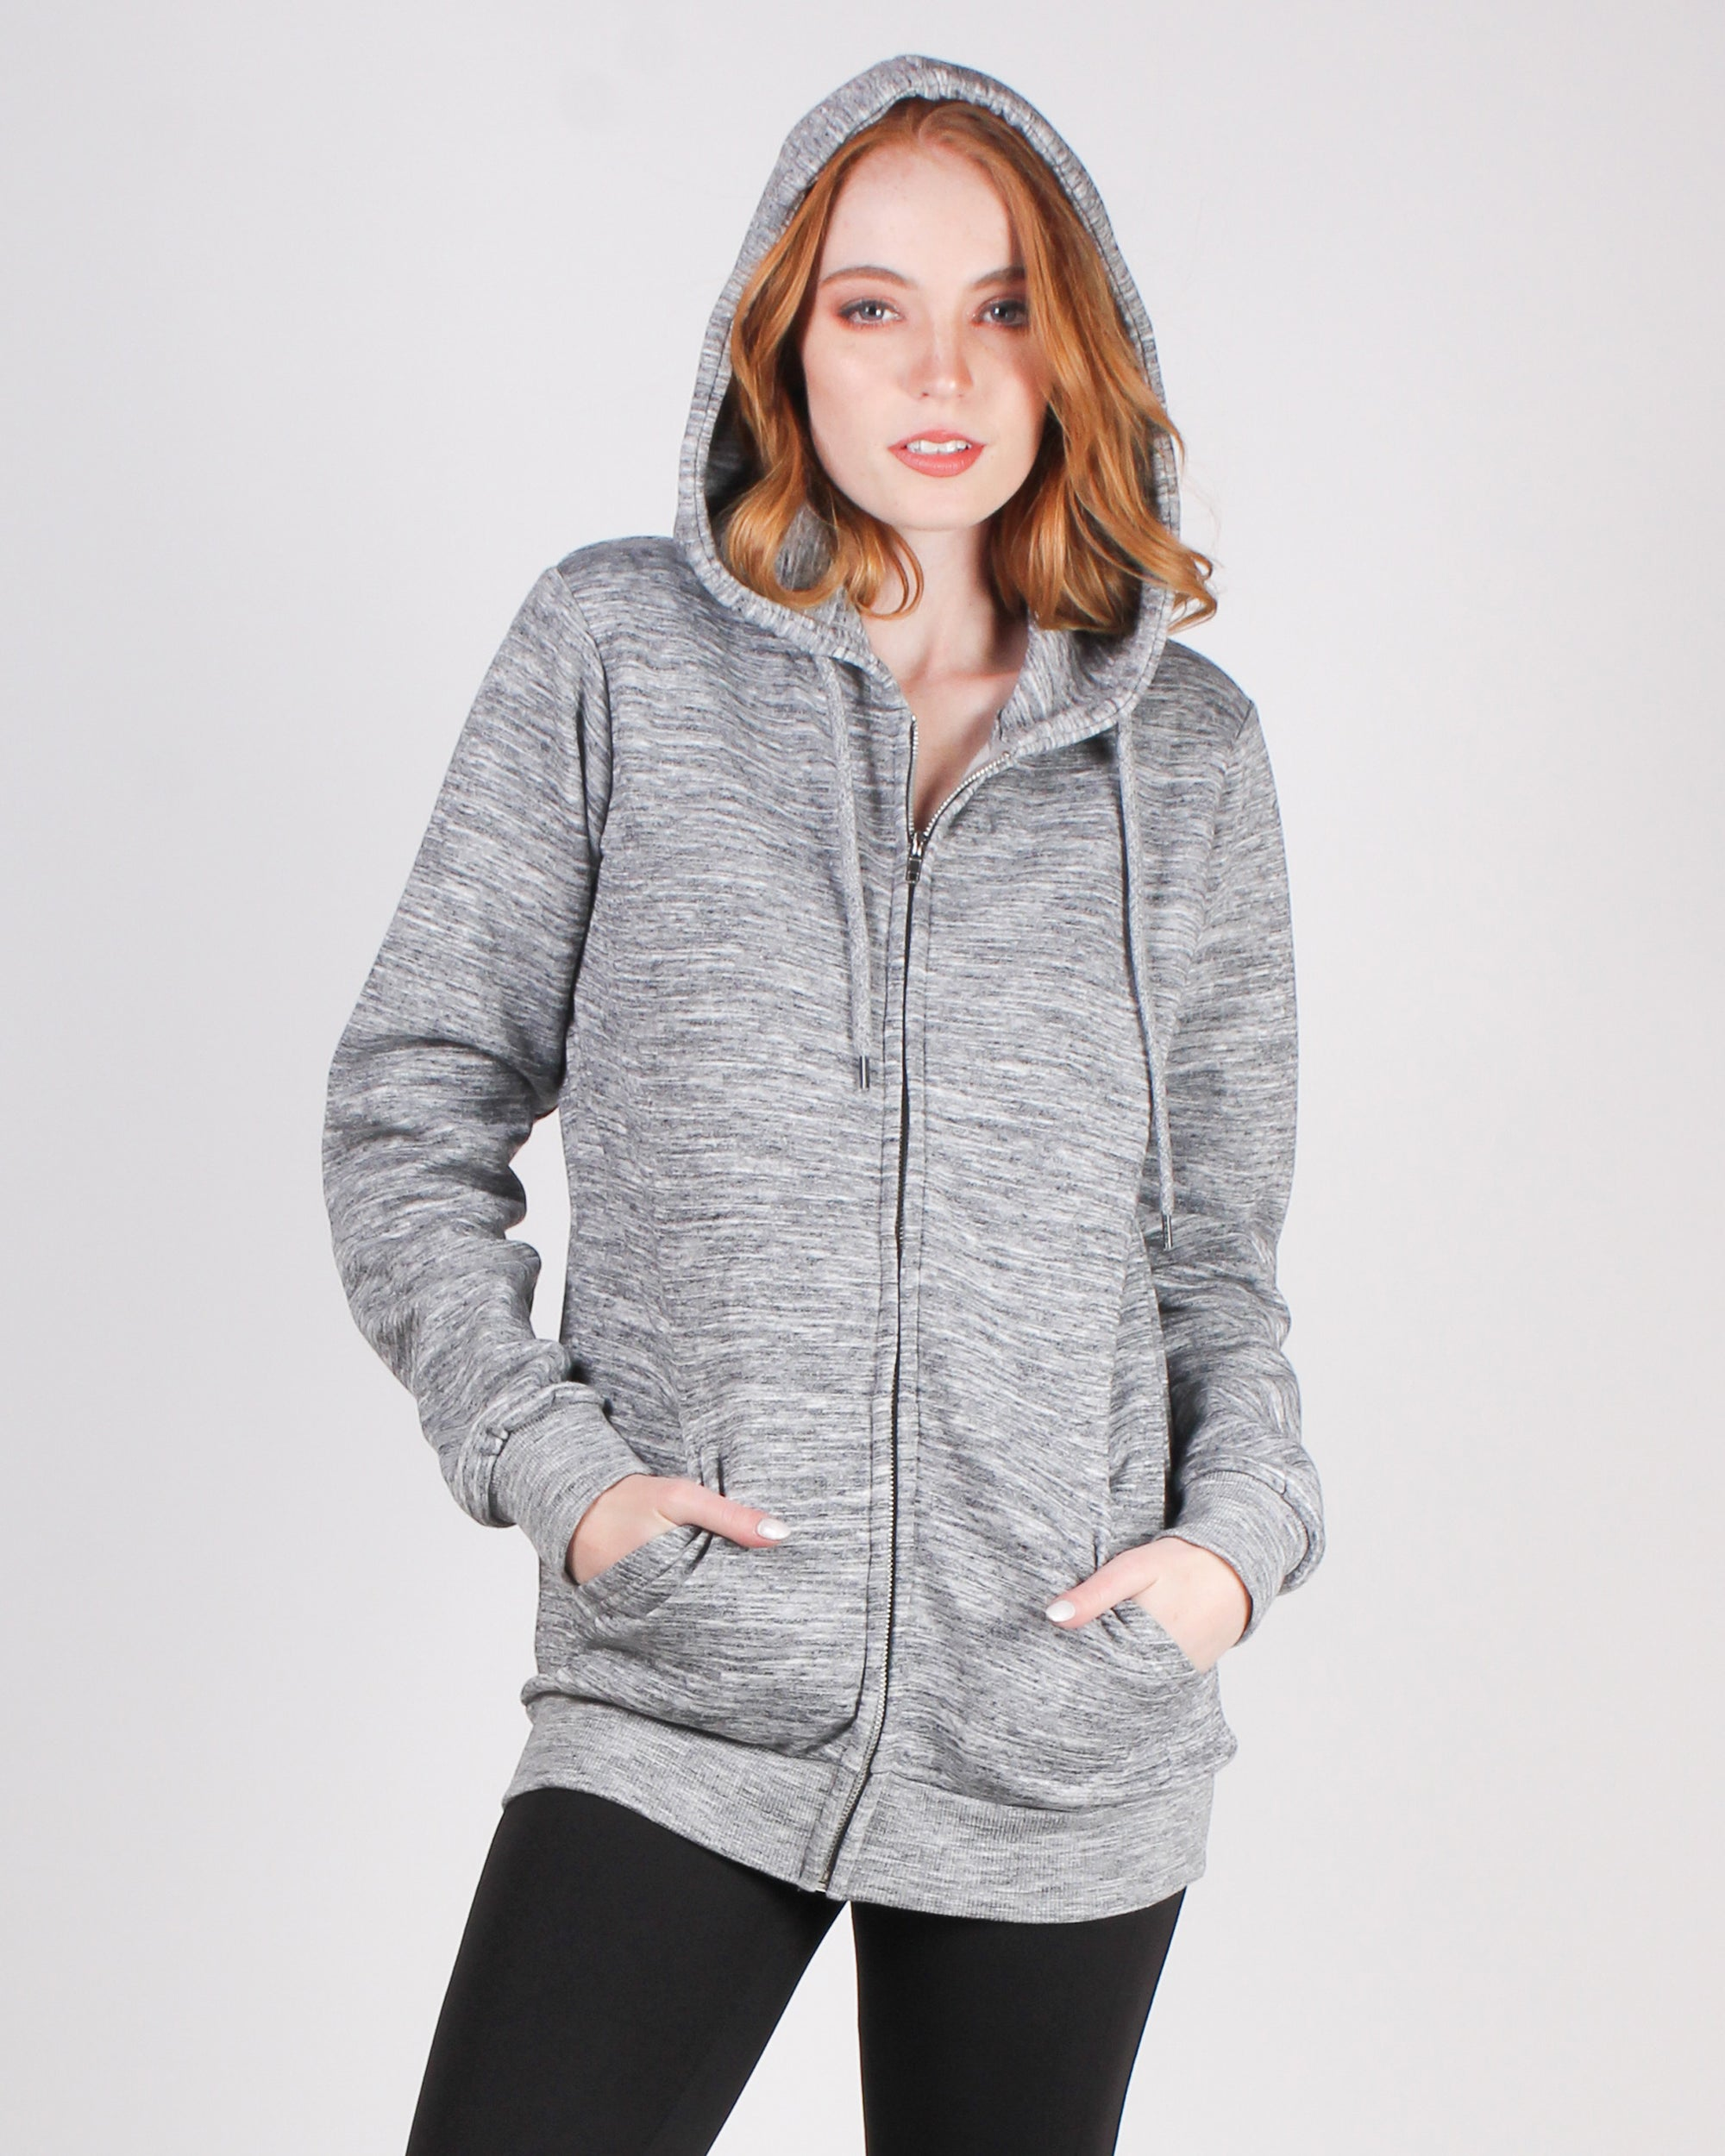 Fashion Q Shop Q Make Yourself Proud Zip-up Hoodie (Heather Grey) JK910